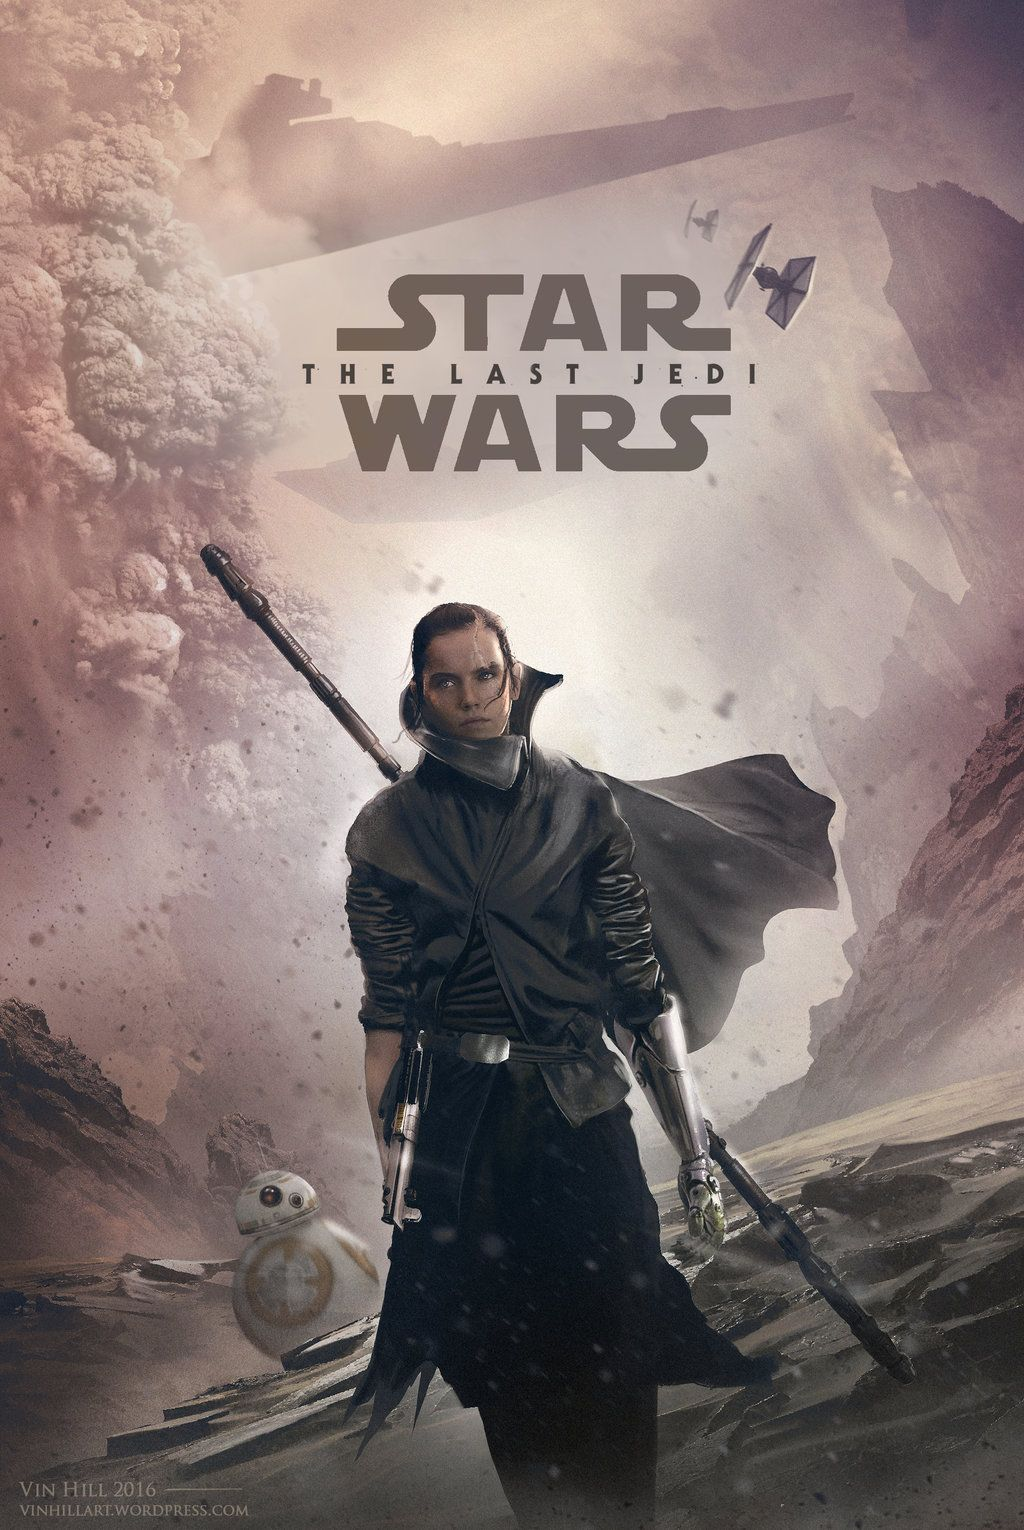 Star Wars The Last Jedi Wallpaper Best Wallpaper Hd Rey Star Wars Star Wars Art Star Wars Episodes